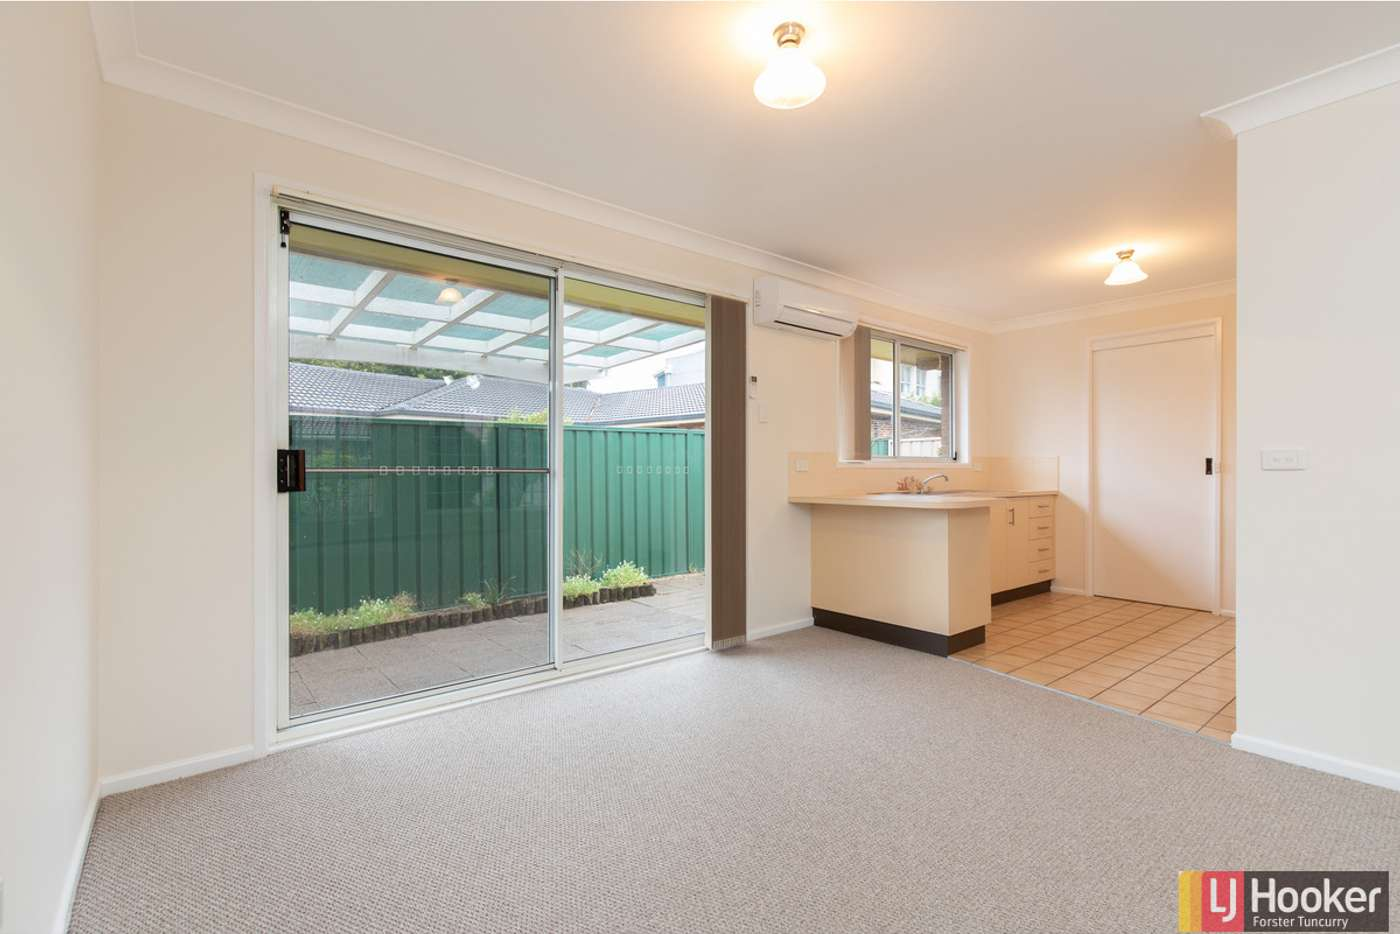 Fifth view of Homely villa listing, 1/4 Heath Avenue, Tuncurry NSW 2428